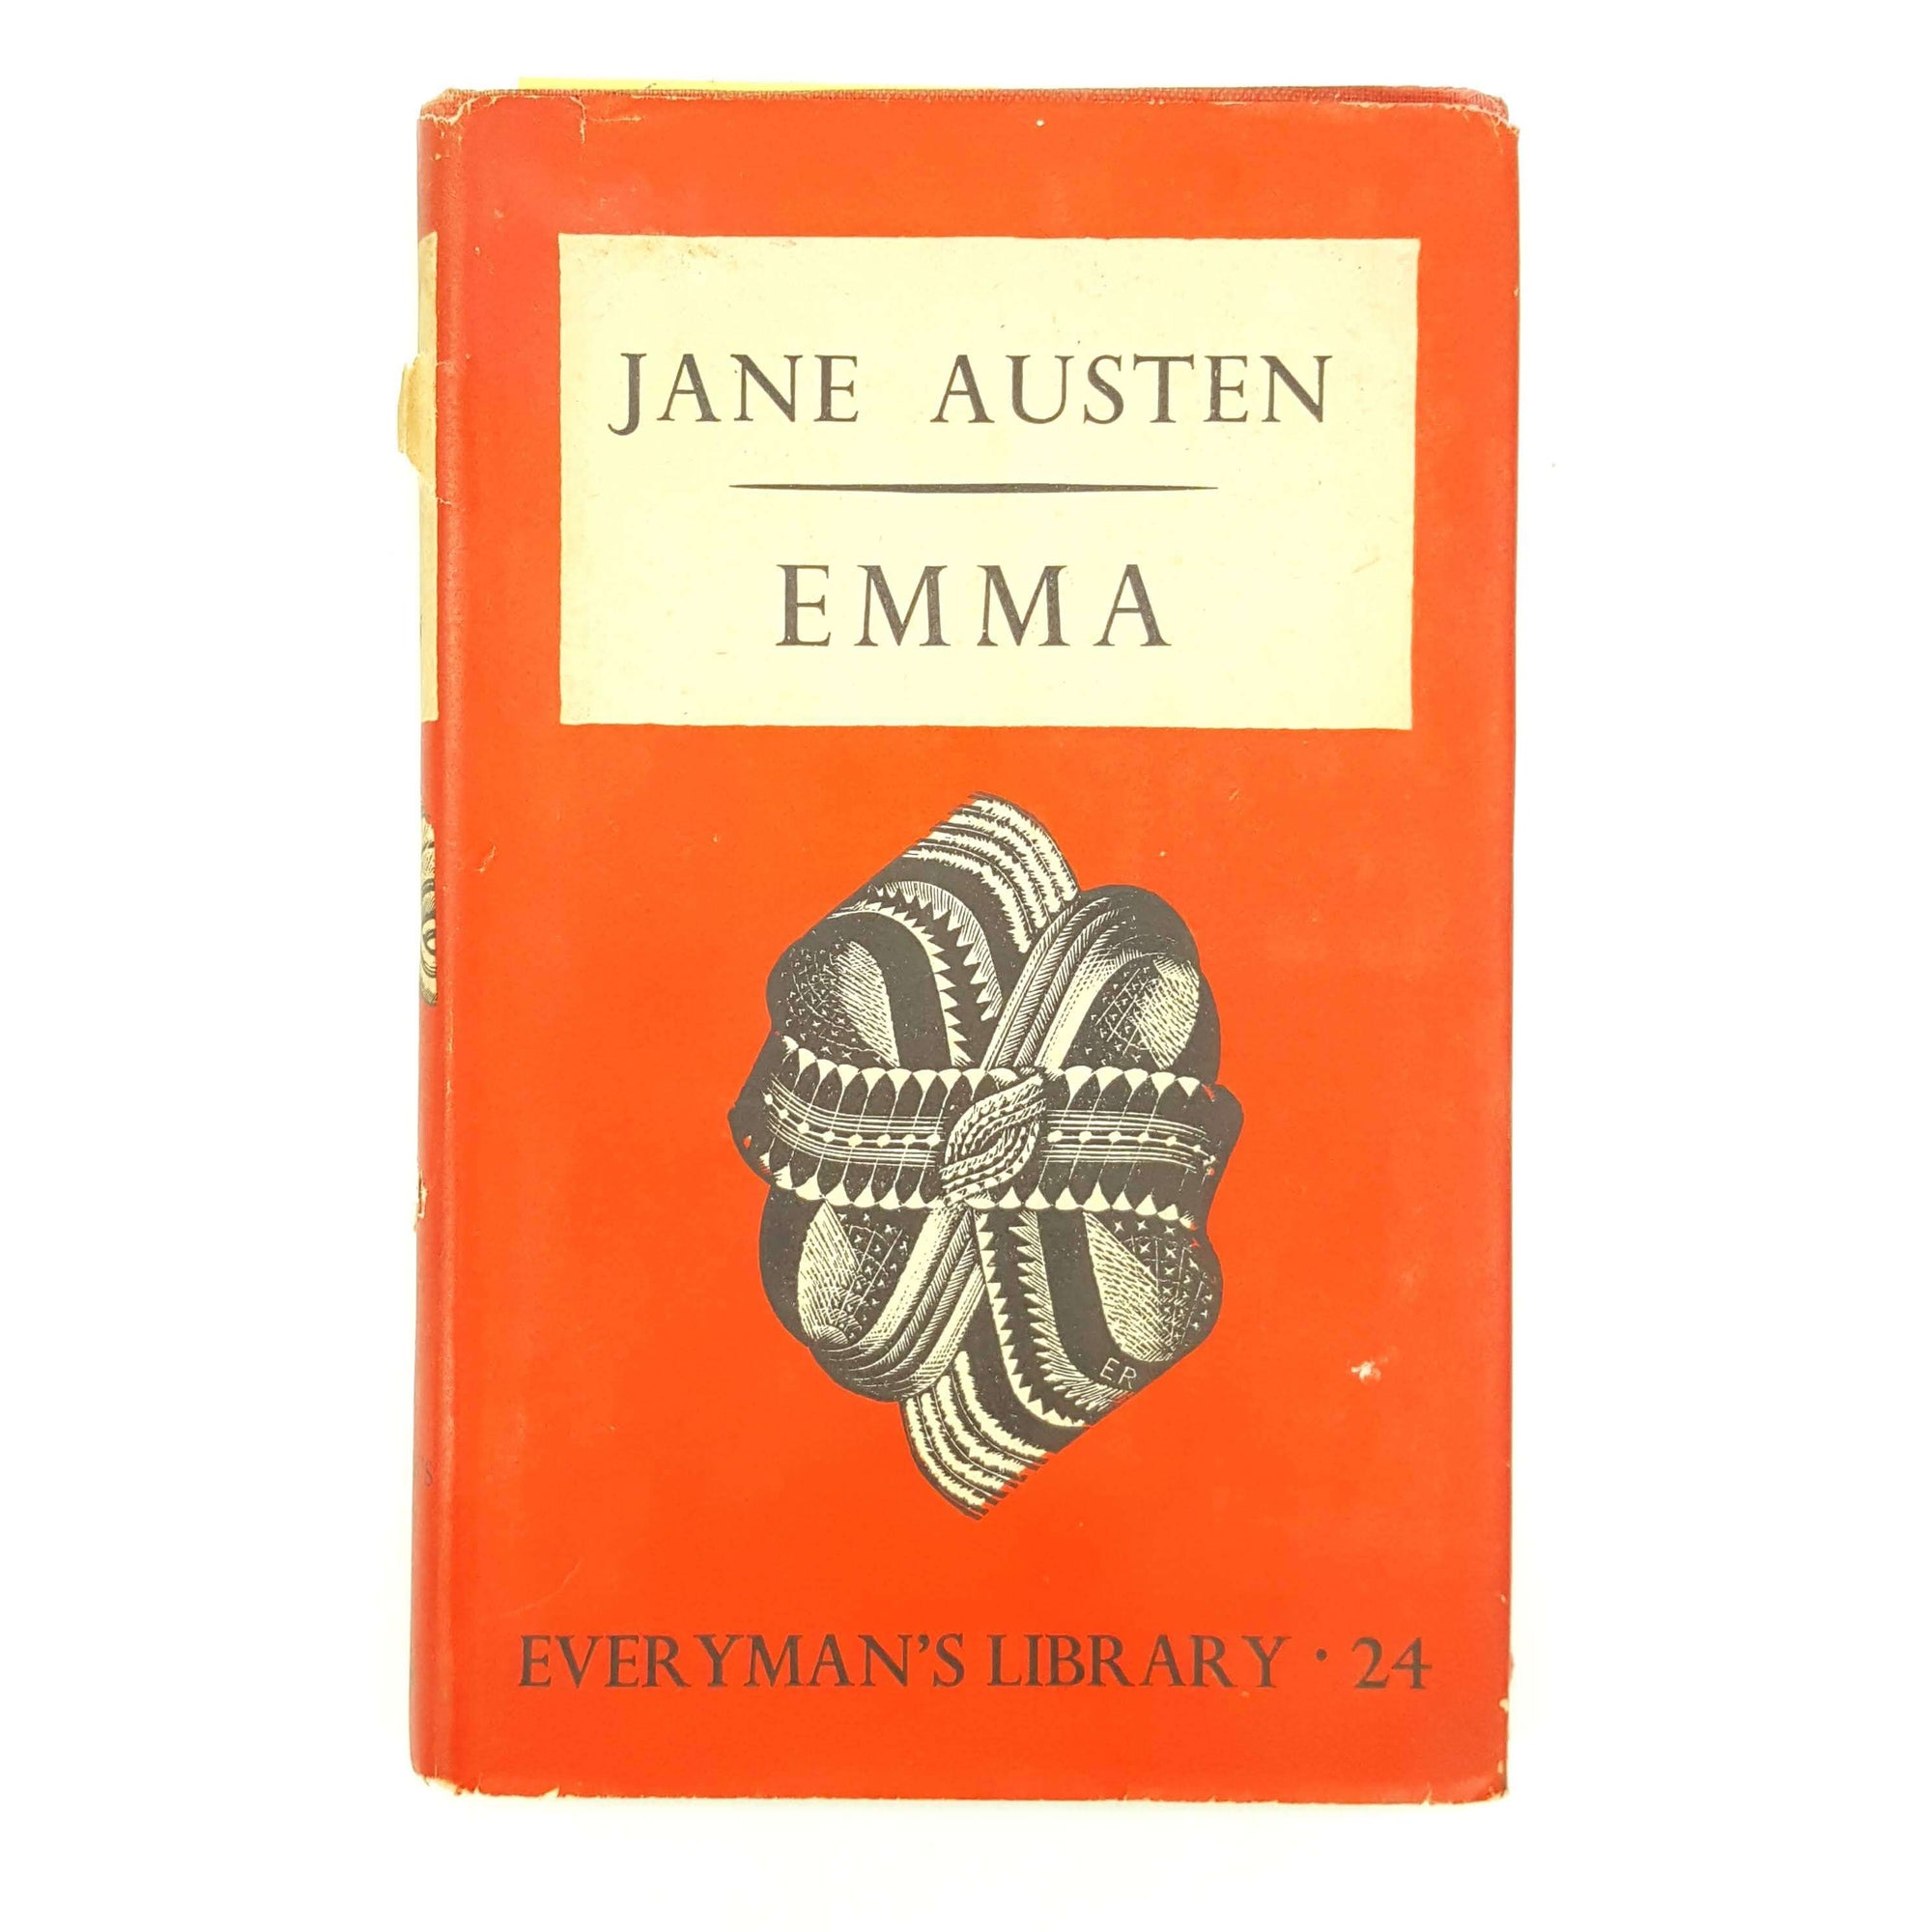 ane Austen's Emma - Everyman Library 1950 Country House Libray